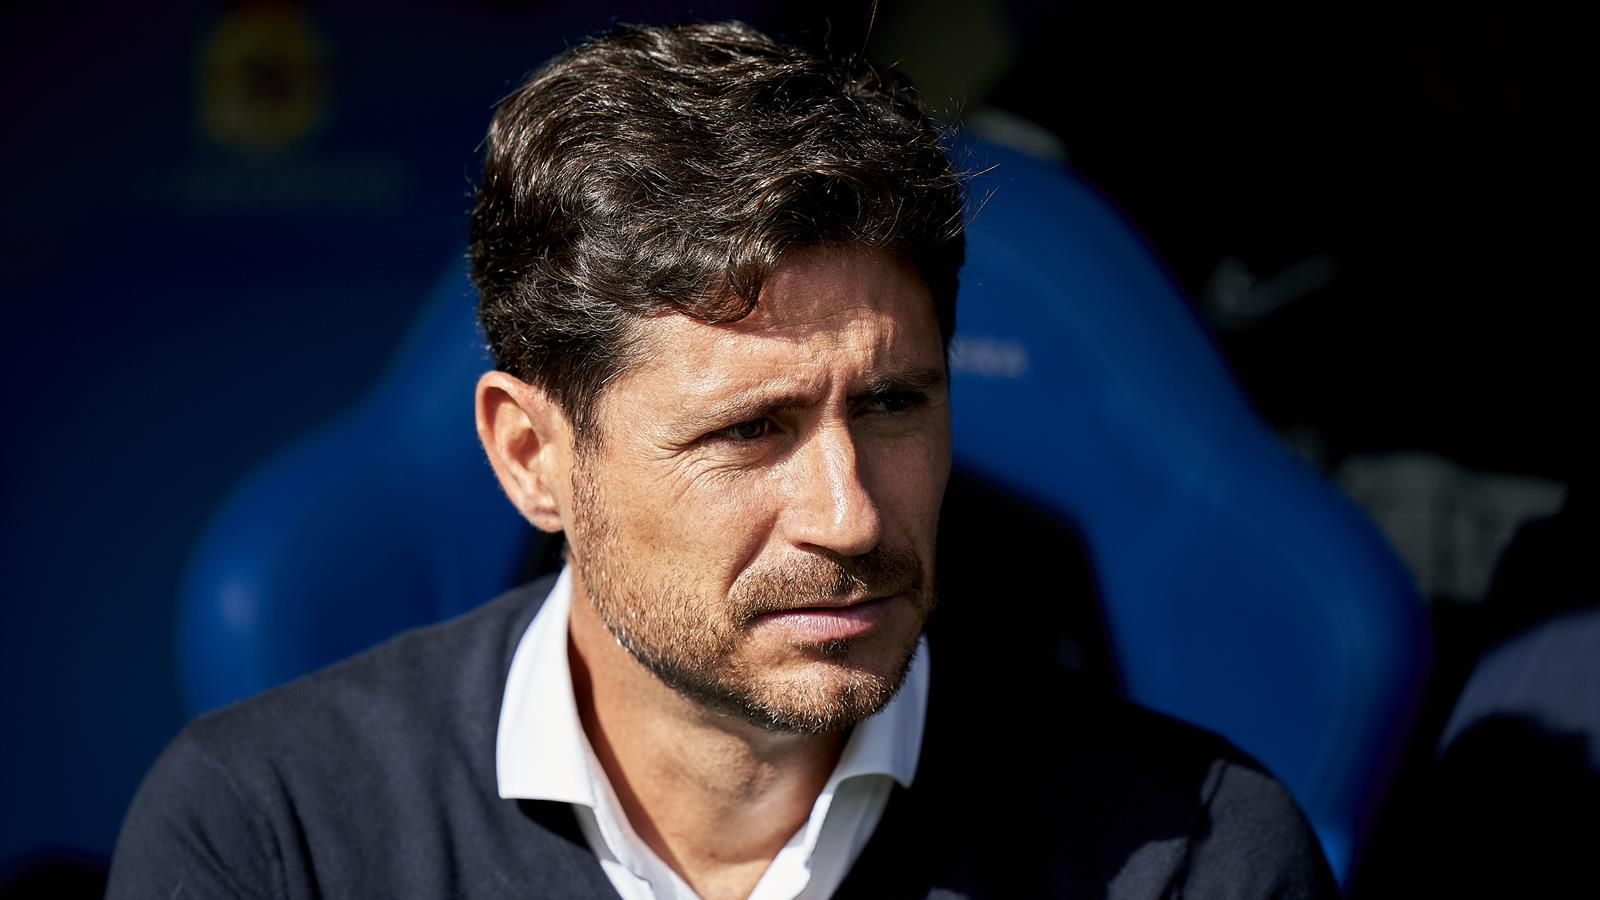 """Malaga"" fired the head coach because of an intimate video"